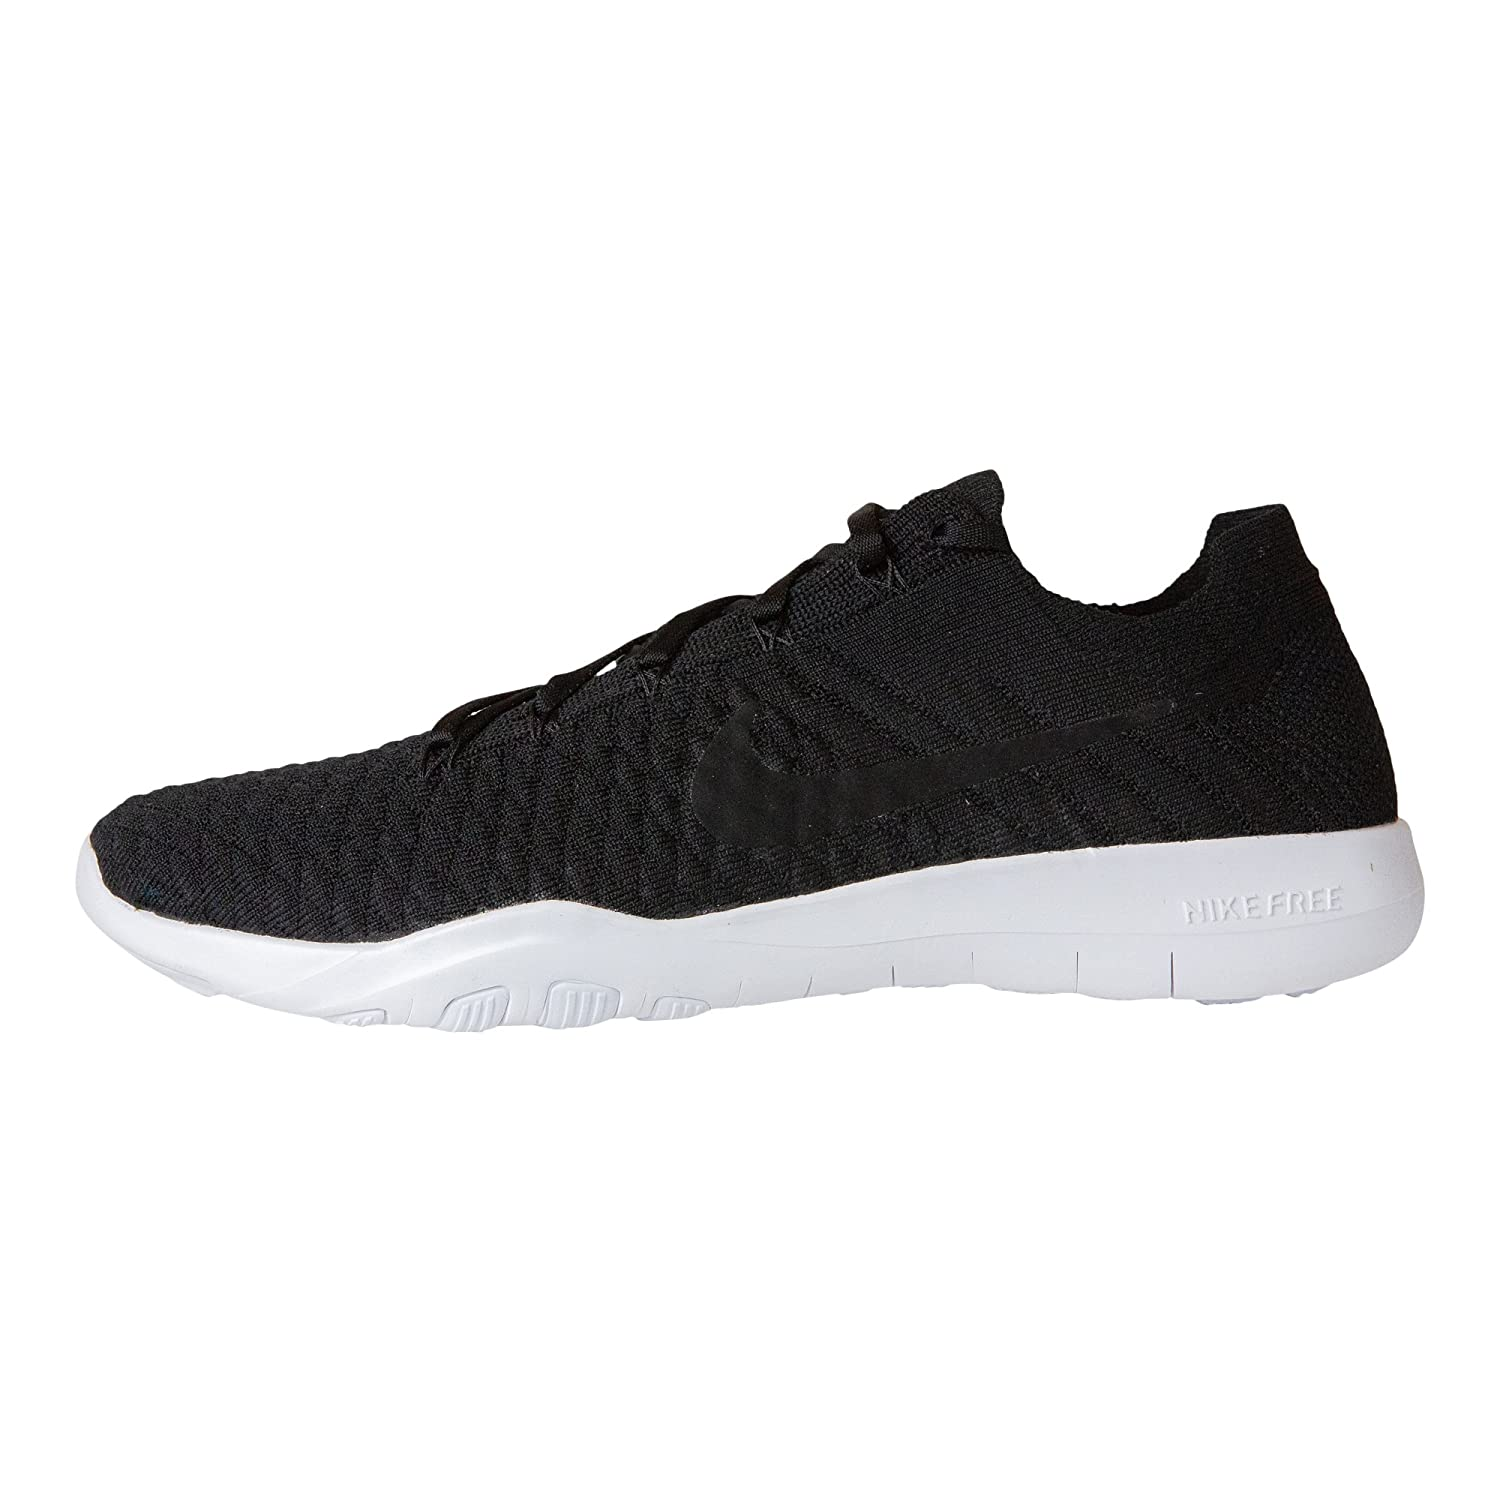 timeless design 2dfd5 6c6fc Nike Free TR Flyknit 2 Womens Running Shoes (10 B(M) US) Black/Black-White